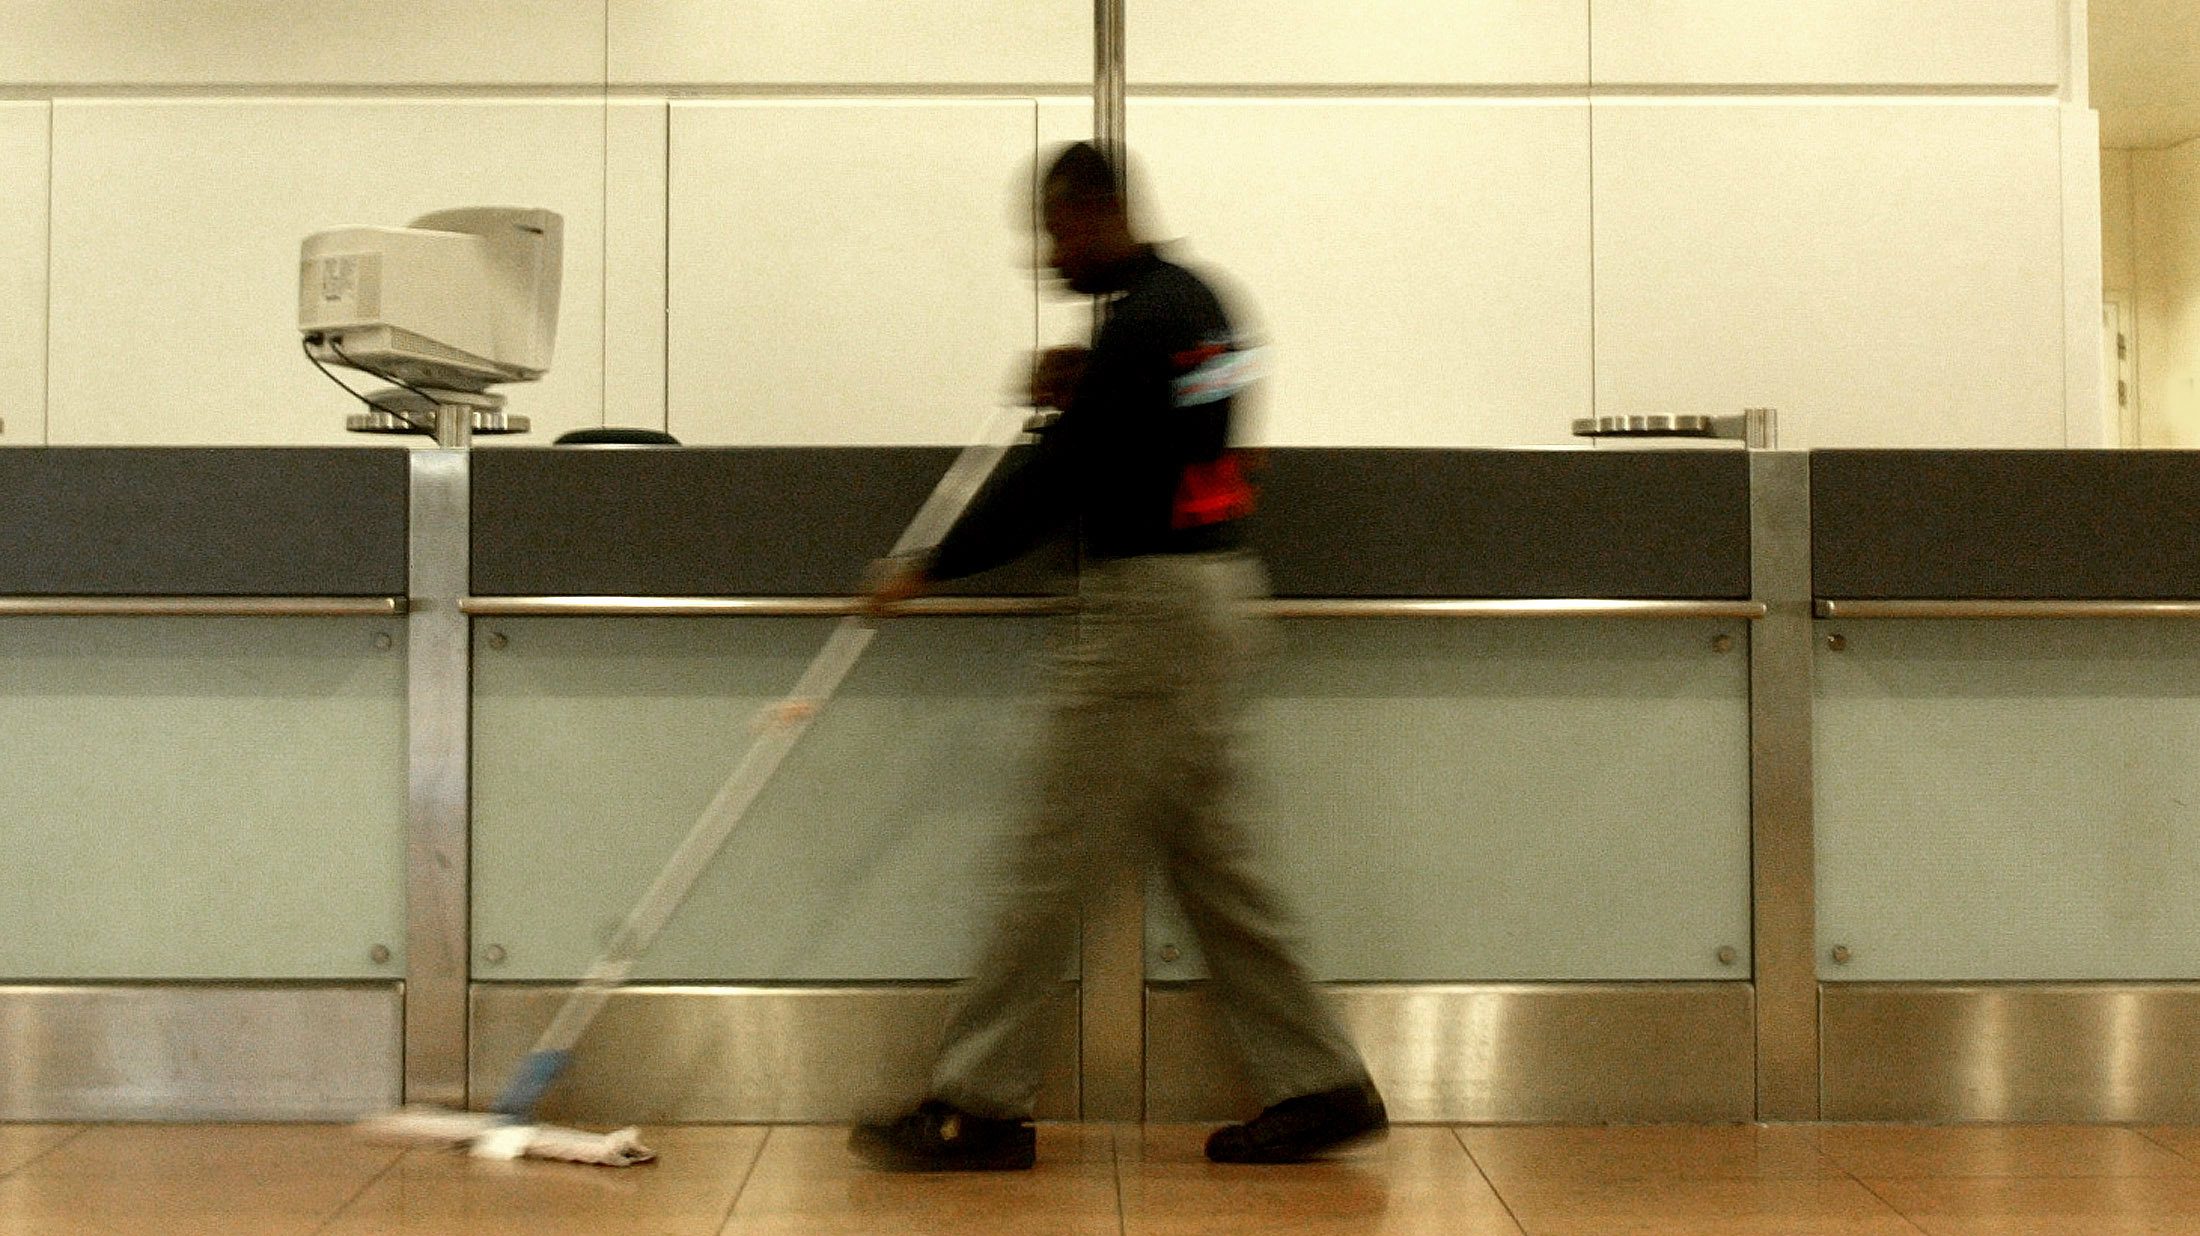 A janitor sweeps up at an airport.